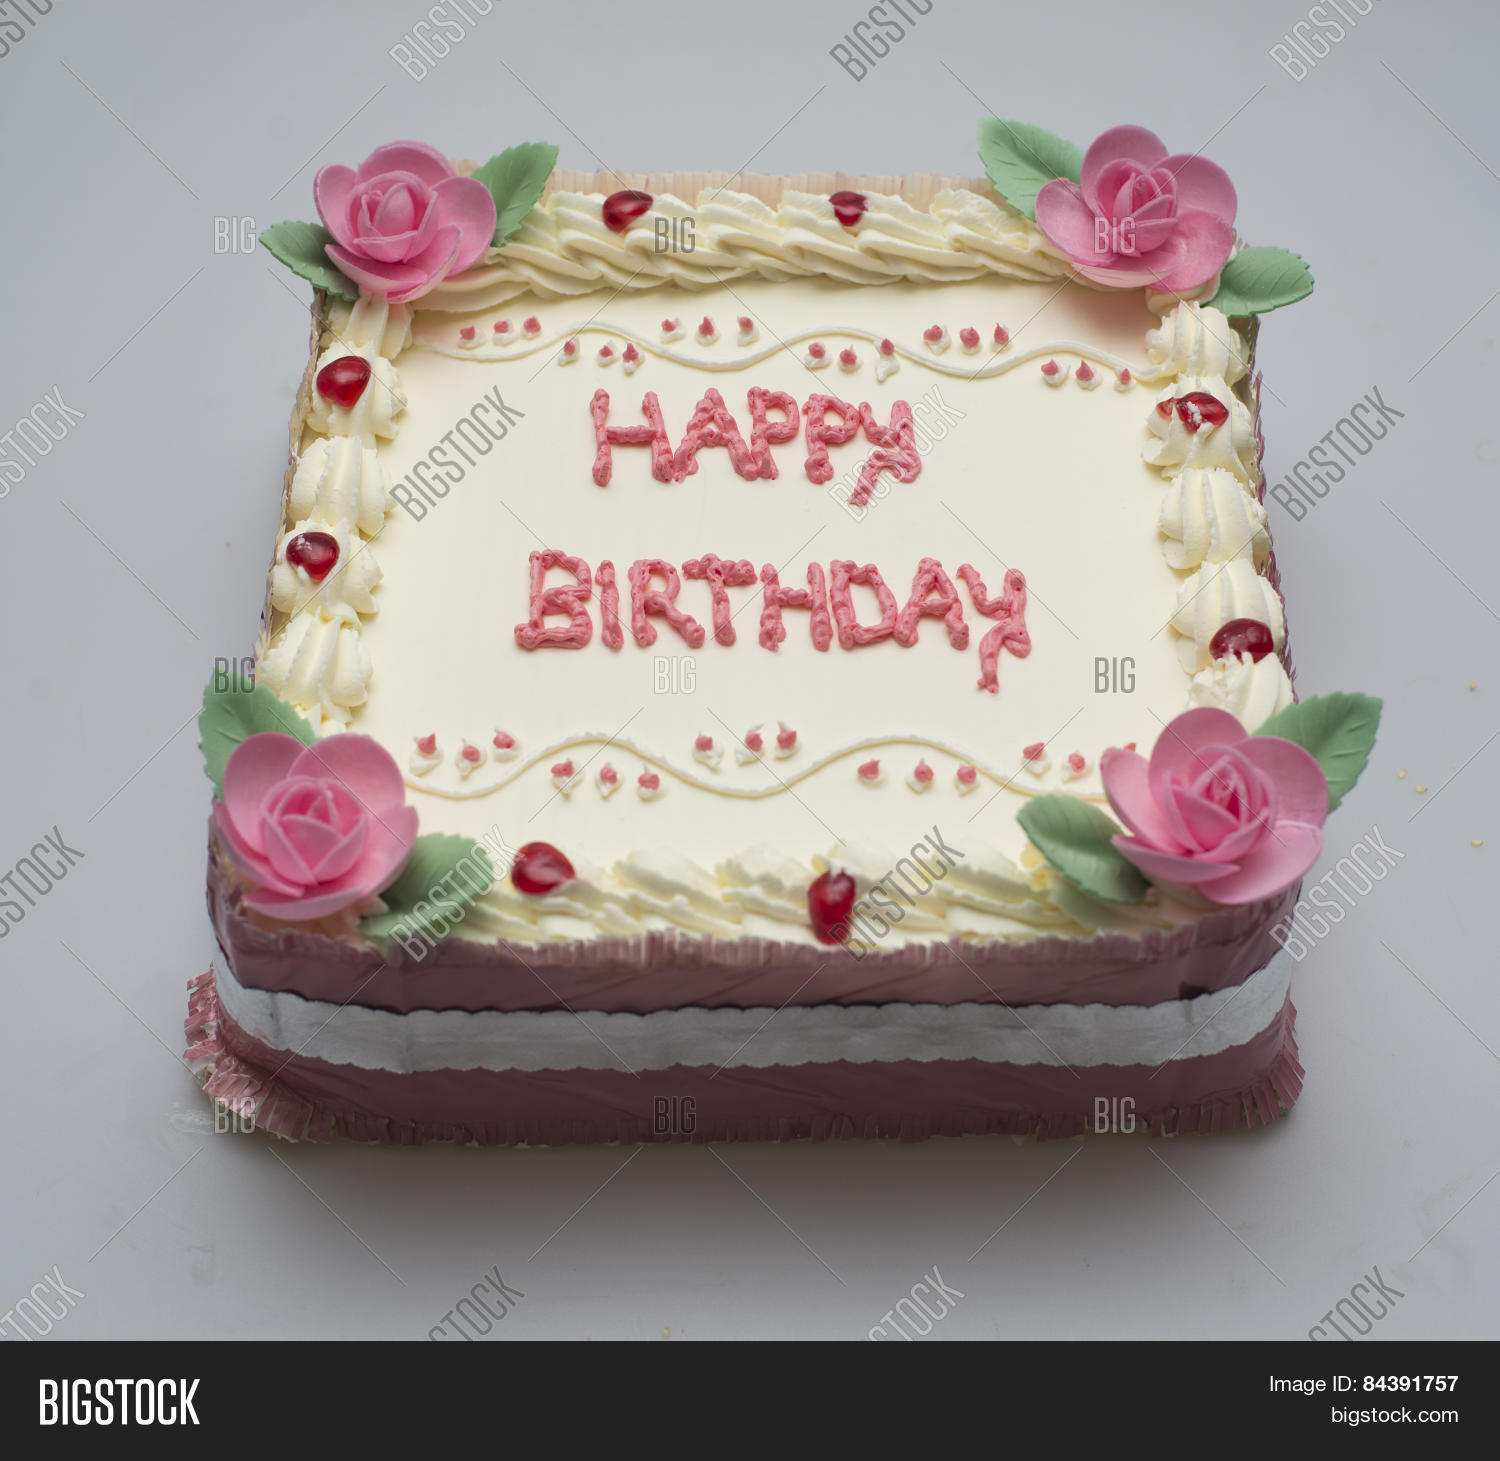 Birthday Cake Designs In Square : Square birthday cake for girl Stock Photo & Stock Images ...